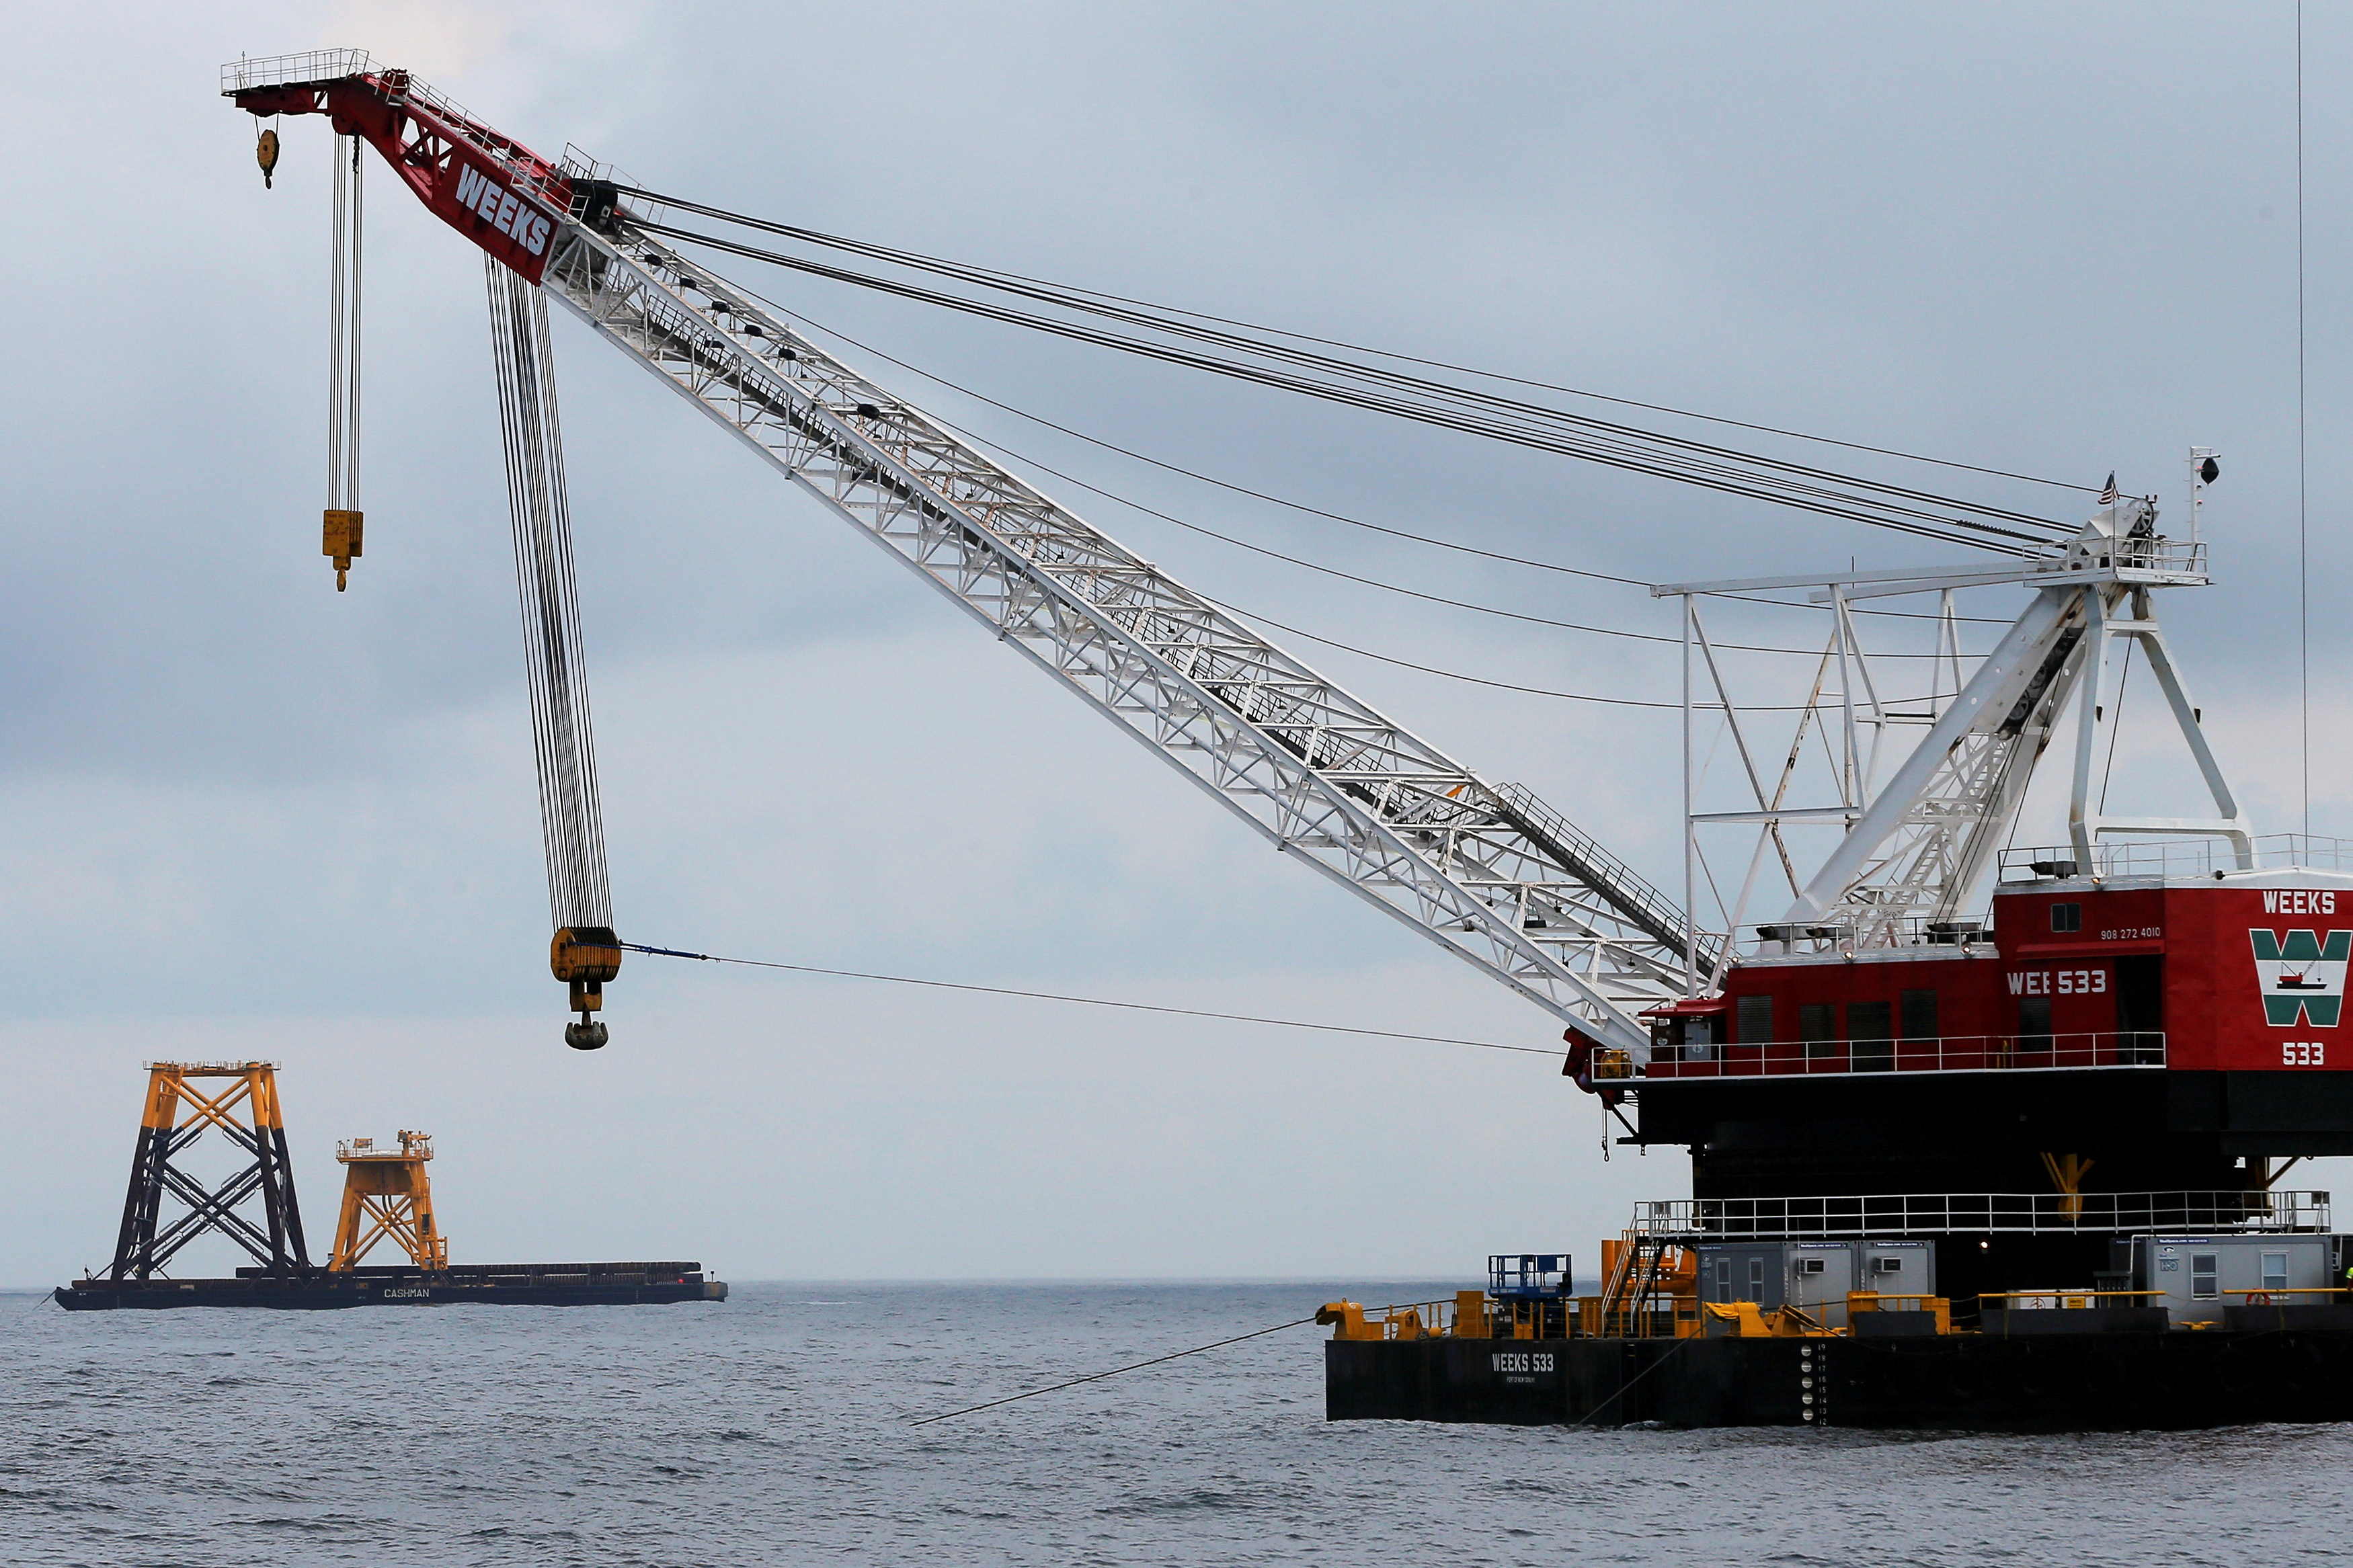 A construction crane floats next to a barge carrying jacket support structures and a platform for a turbine for a wind farm in the waters of the Atlantic Ocean off Block Island, Rhode Island July 27, 2015. REUTERS/Brian Snyder